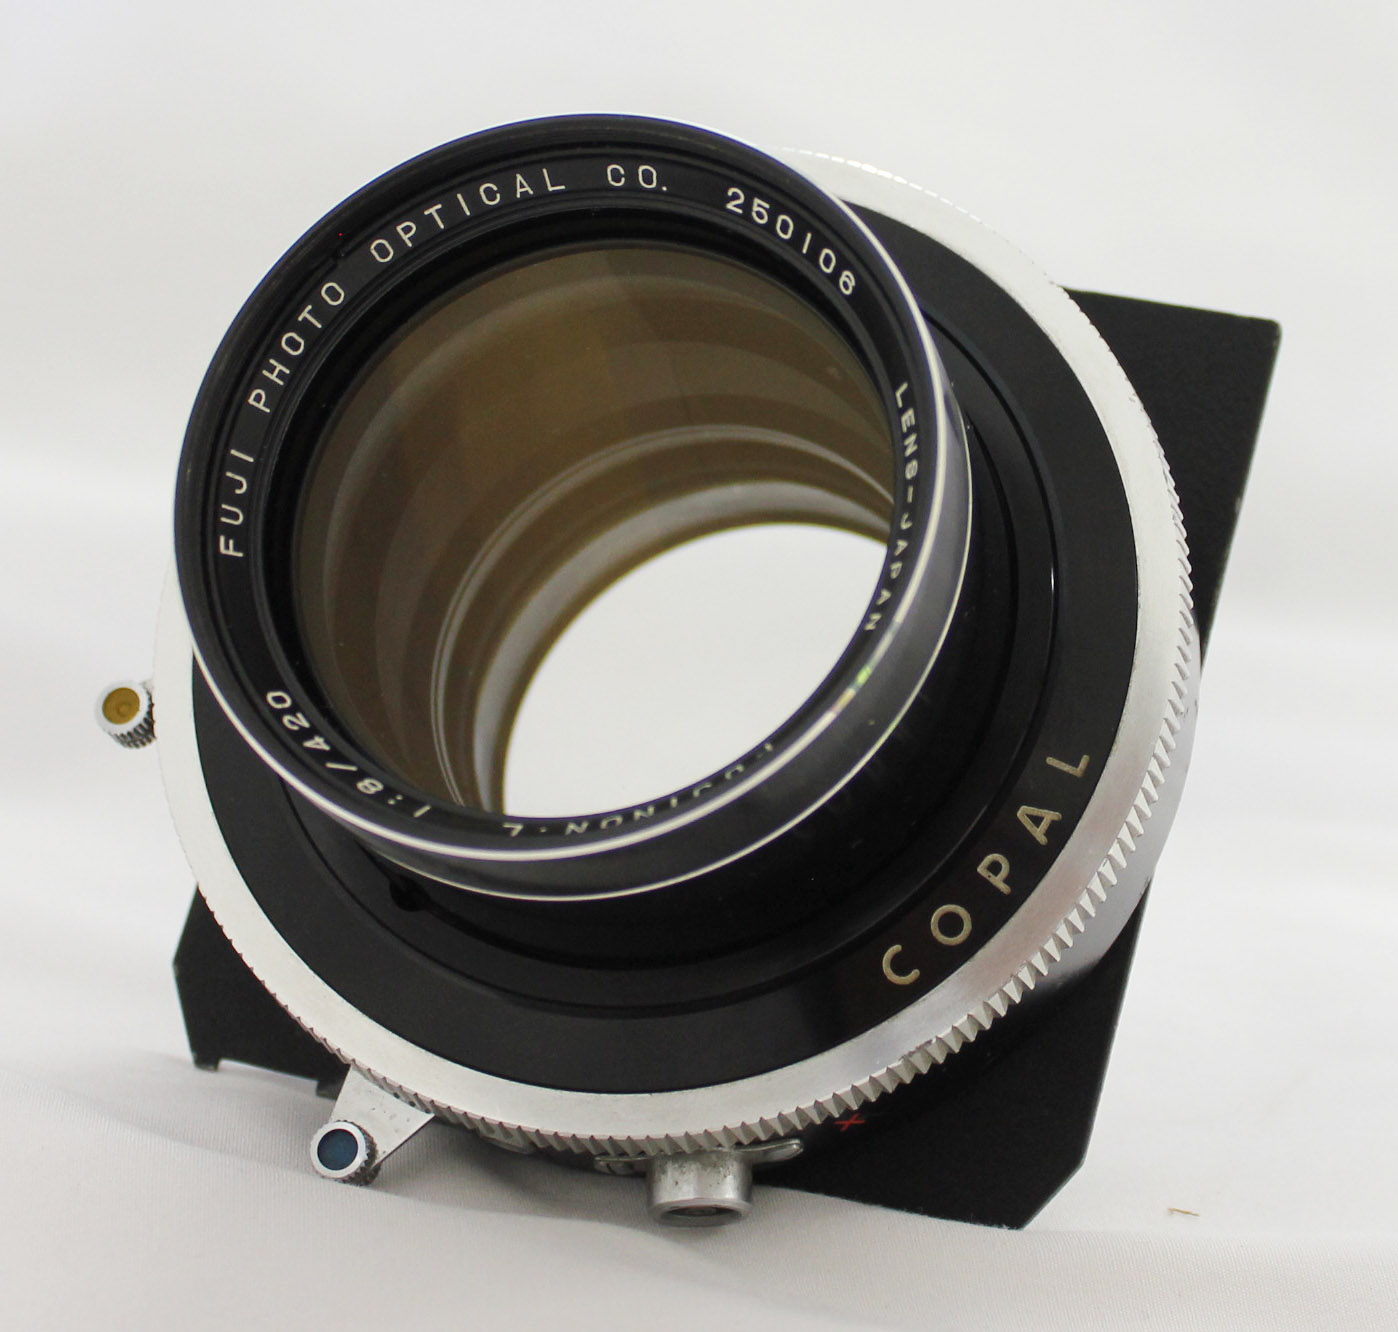 Japan Used Camera Shop | [Exc+++++] Fuji Fujinon L 420mm F/8 Large Format Lens w/ Copal Shutter from Japan